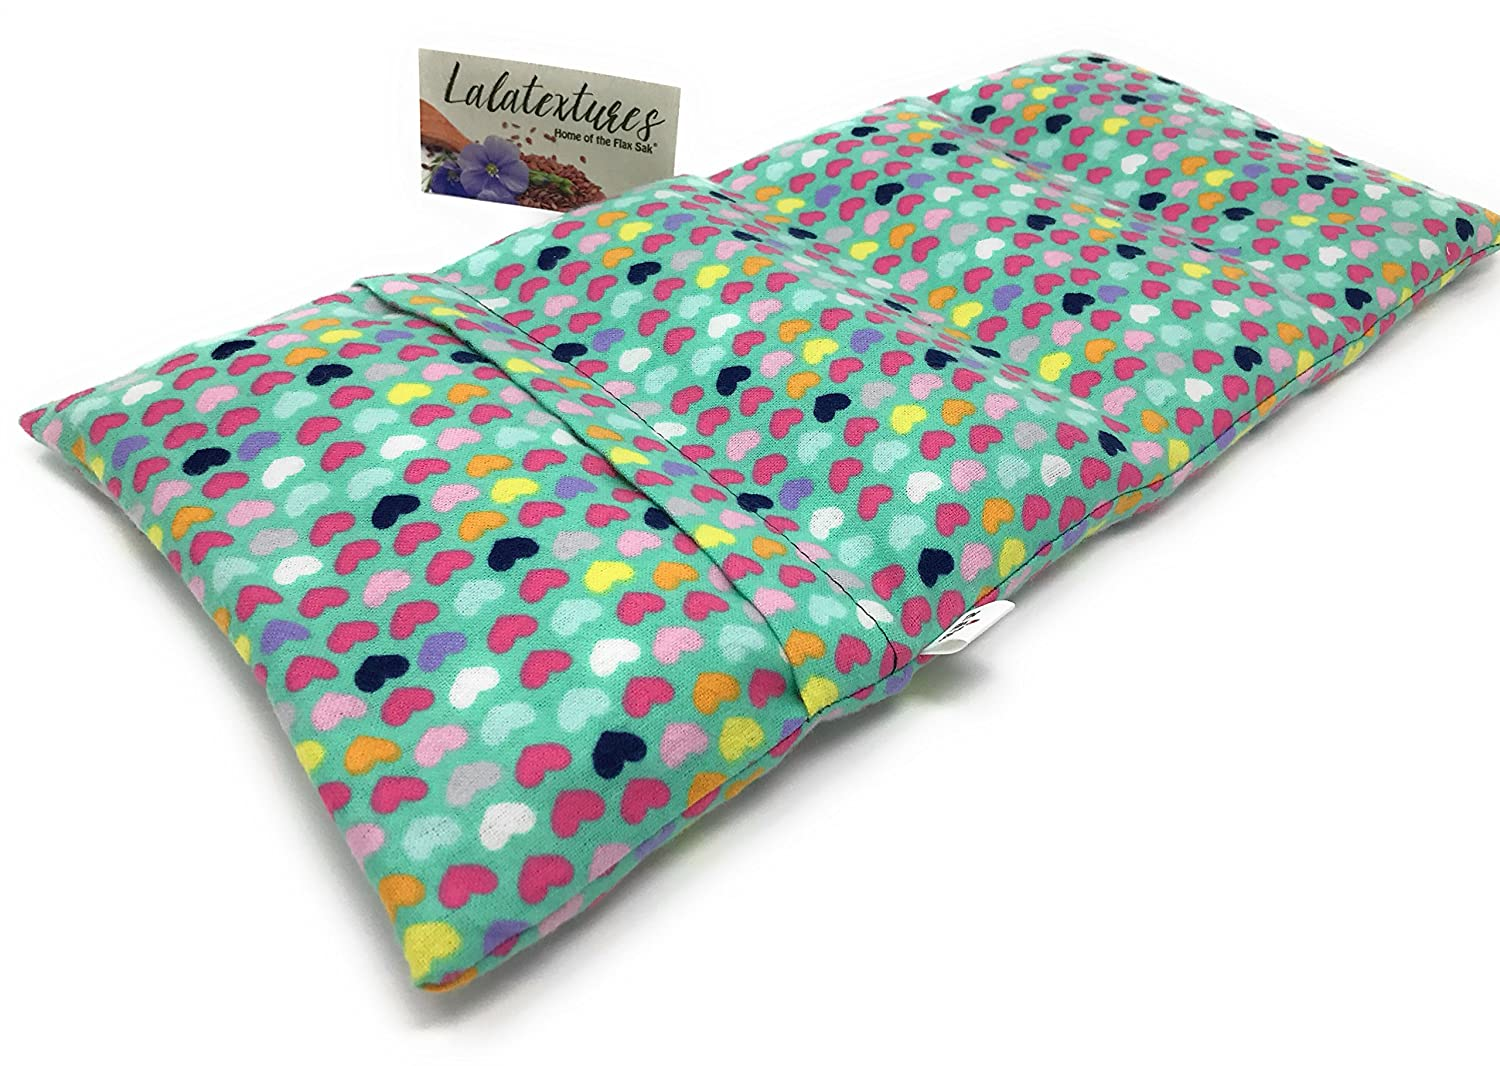 Large Unscented Microwavable Heating Pad by Flax Sak. Hot/Cold Pack with Removable/Washable Cover. Teal with Hearts.